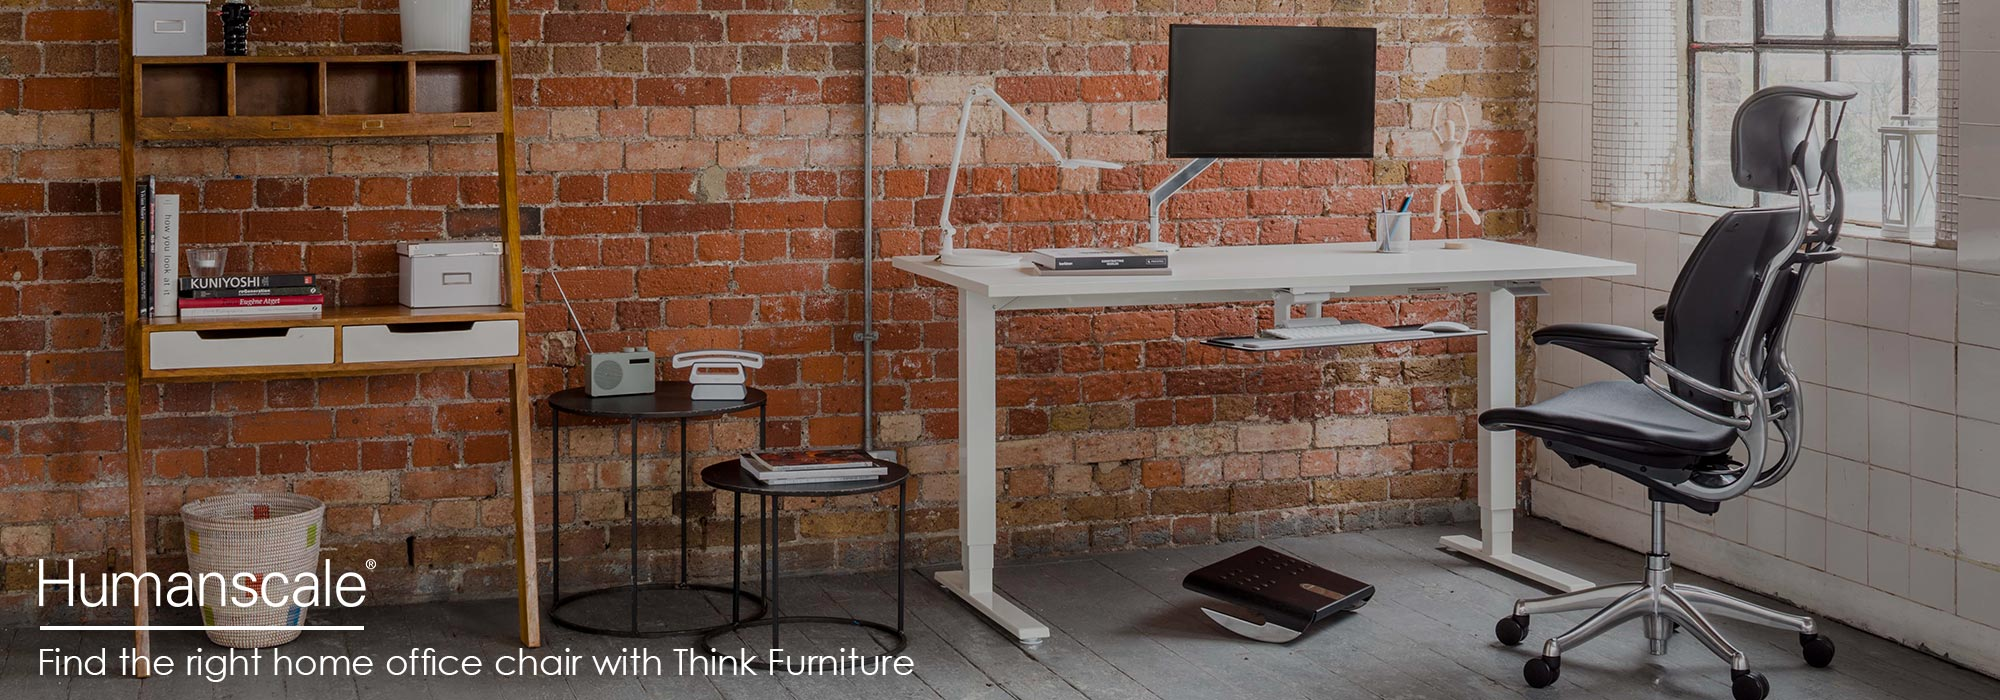 Humanscale Freedom Headrest Chair & Float Desk - Home Working